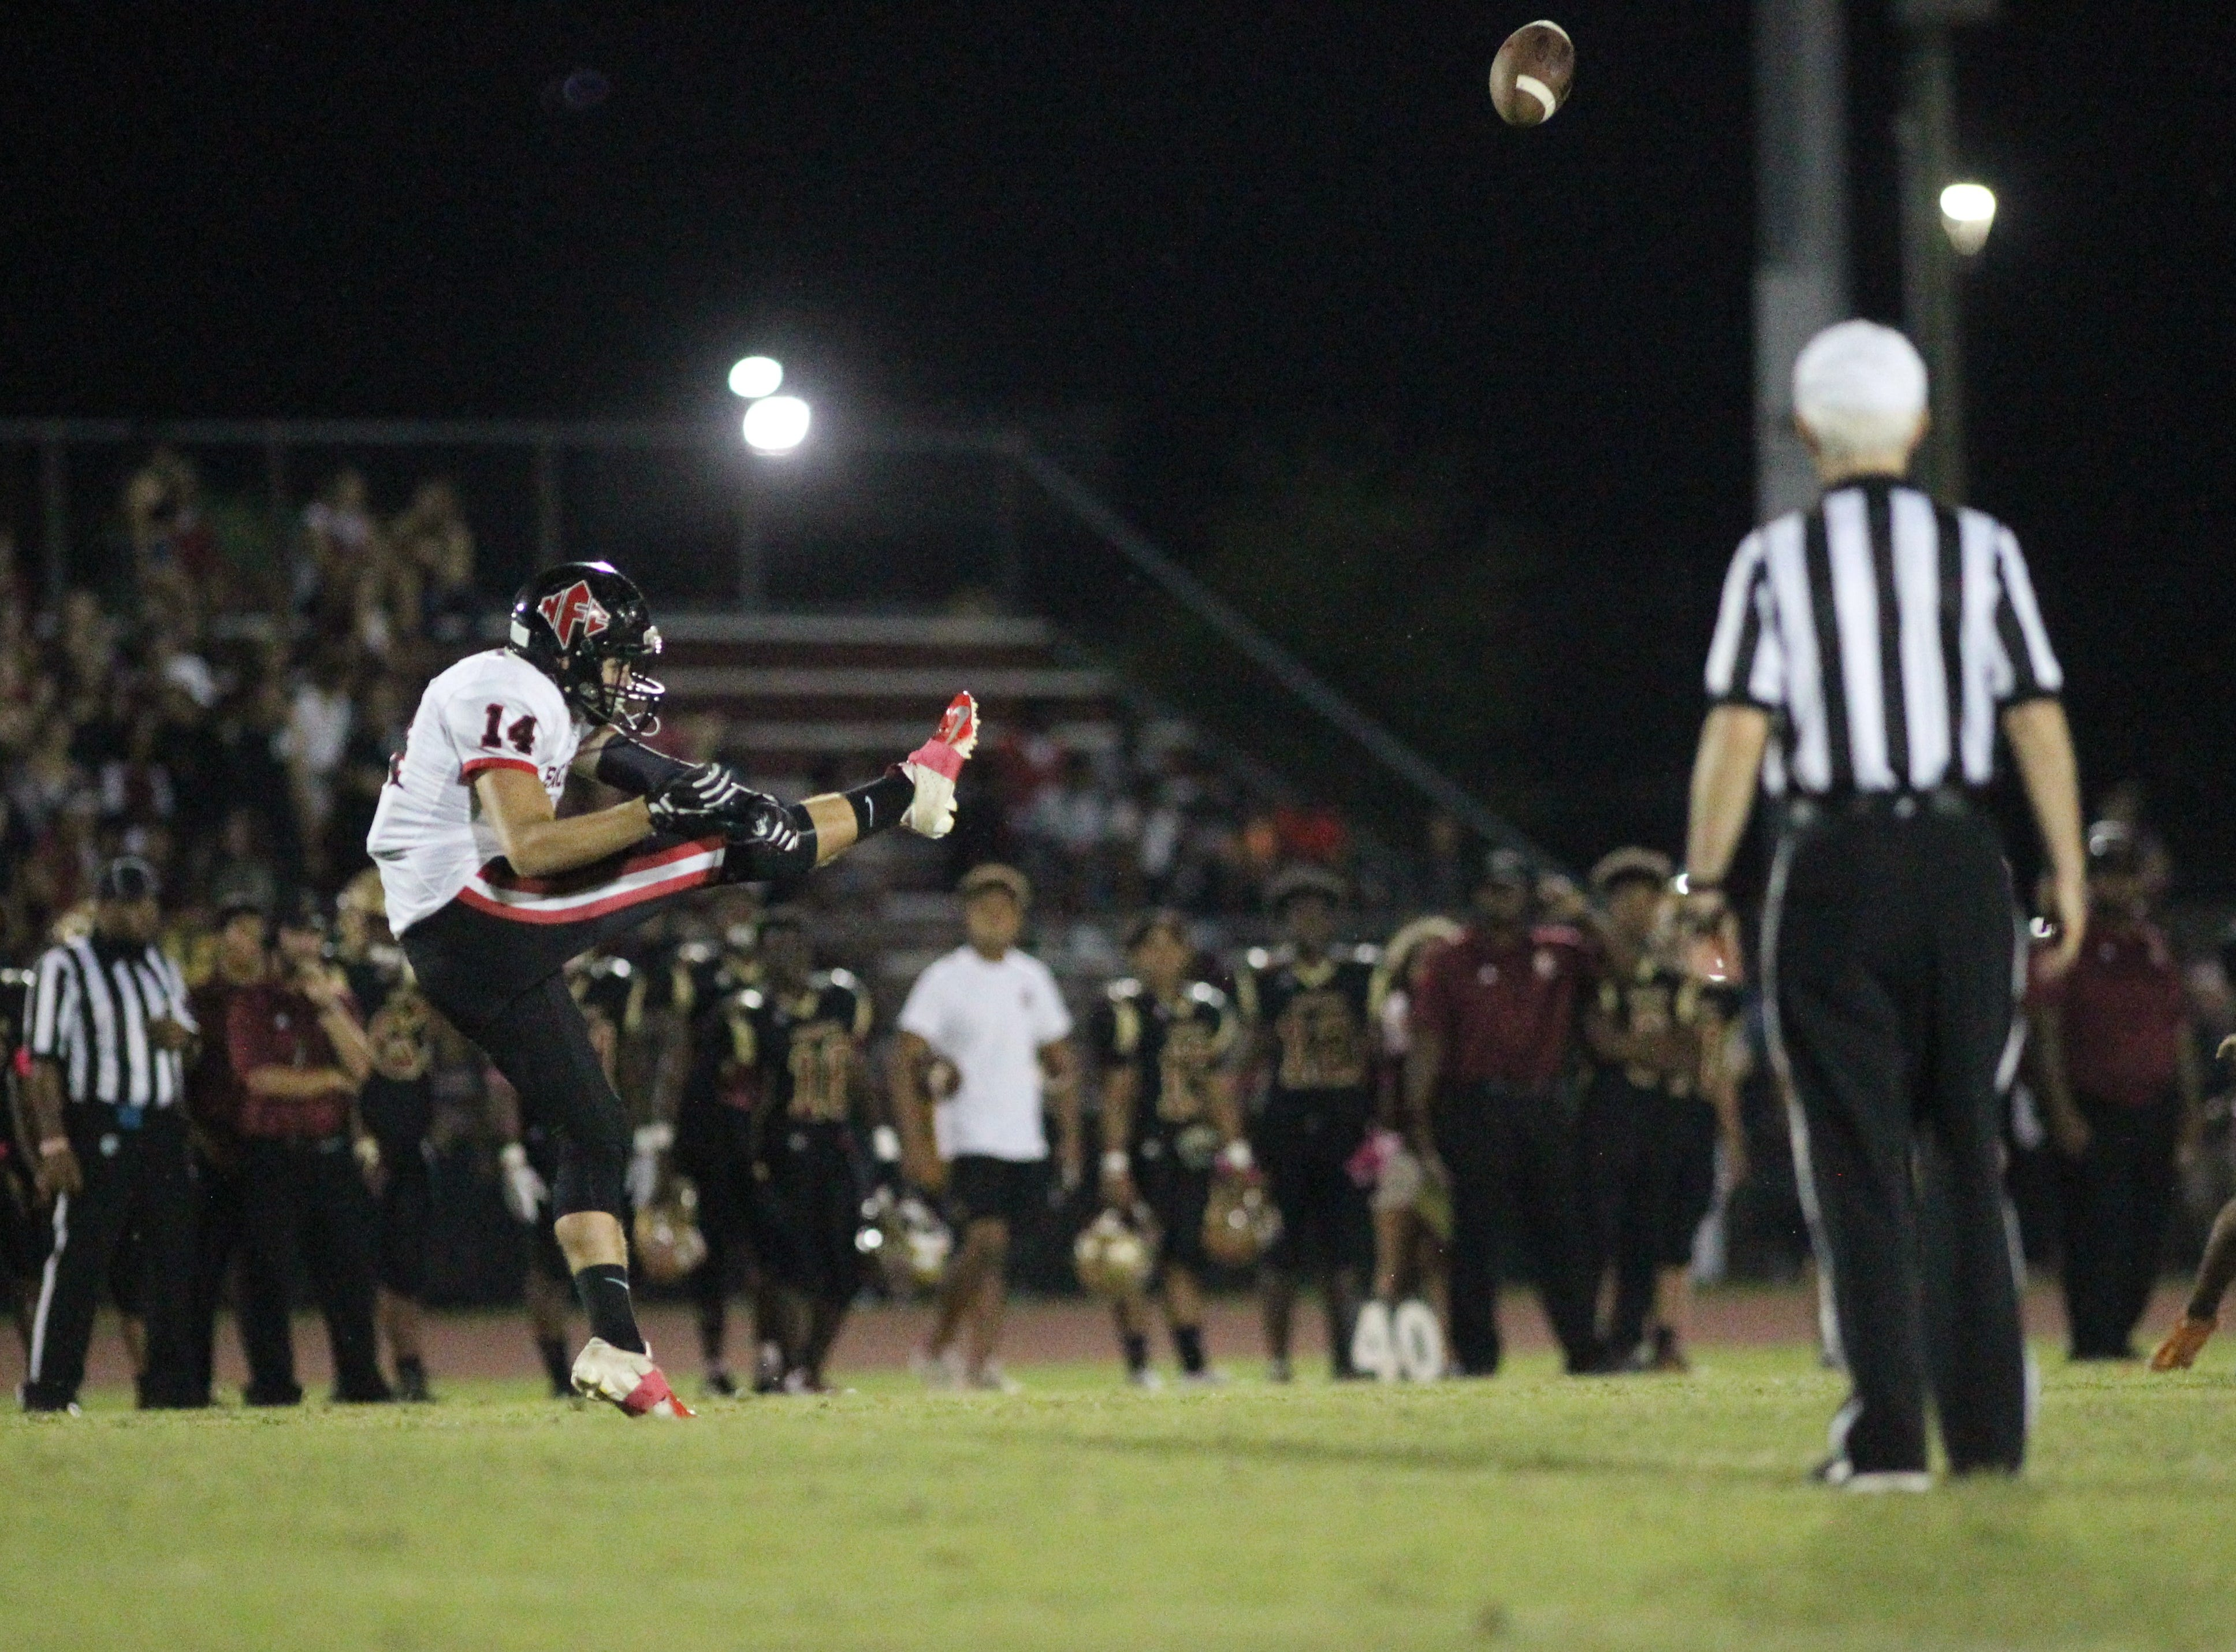 The first half of NFC at Florida High, high school football, Friday, Oct. 5, 2018.